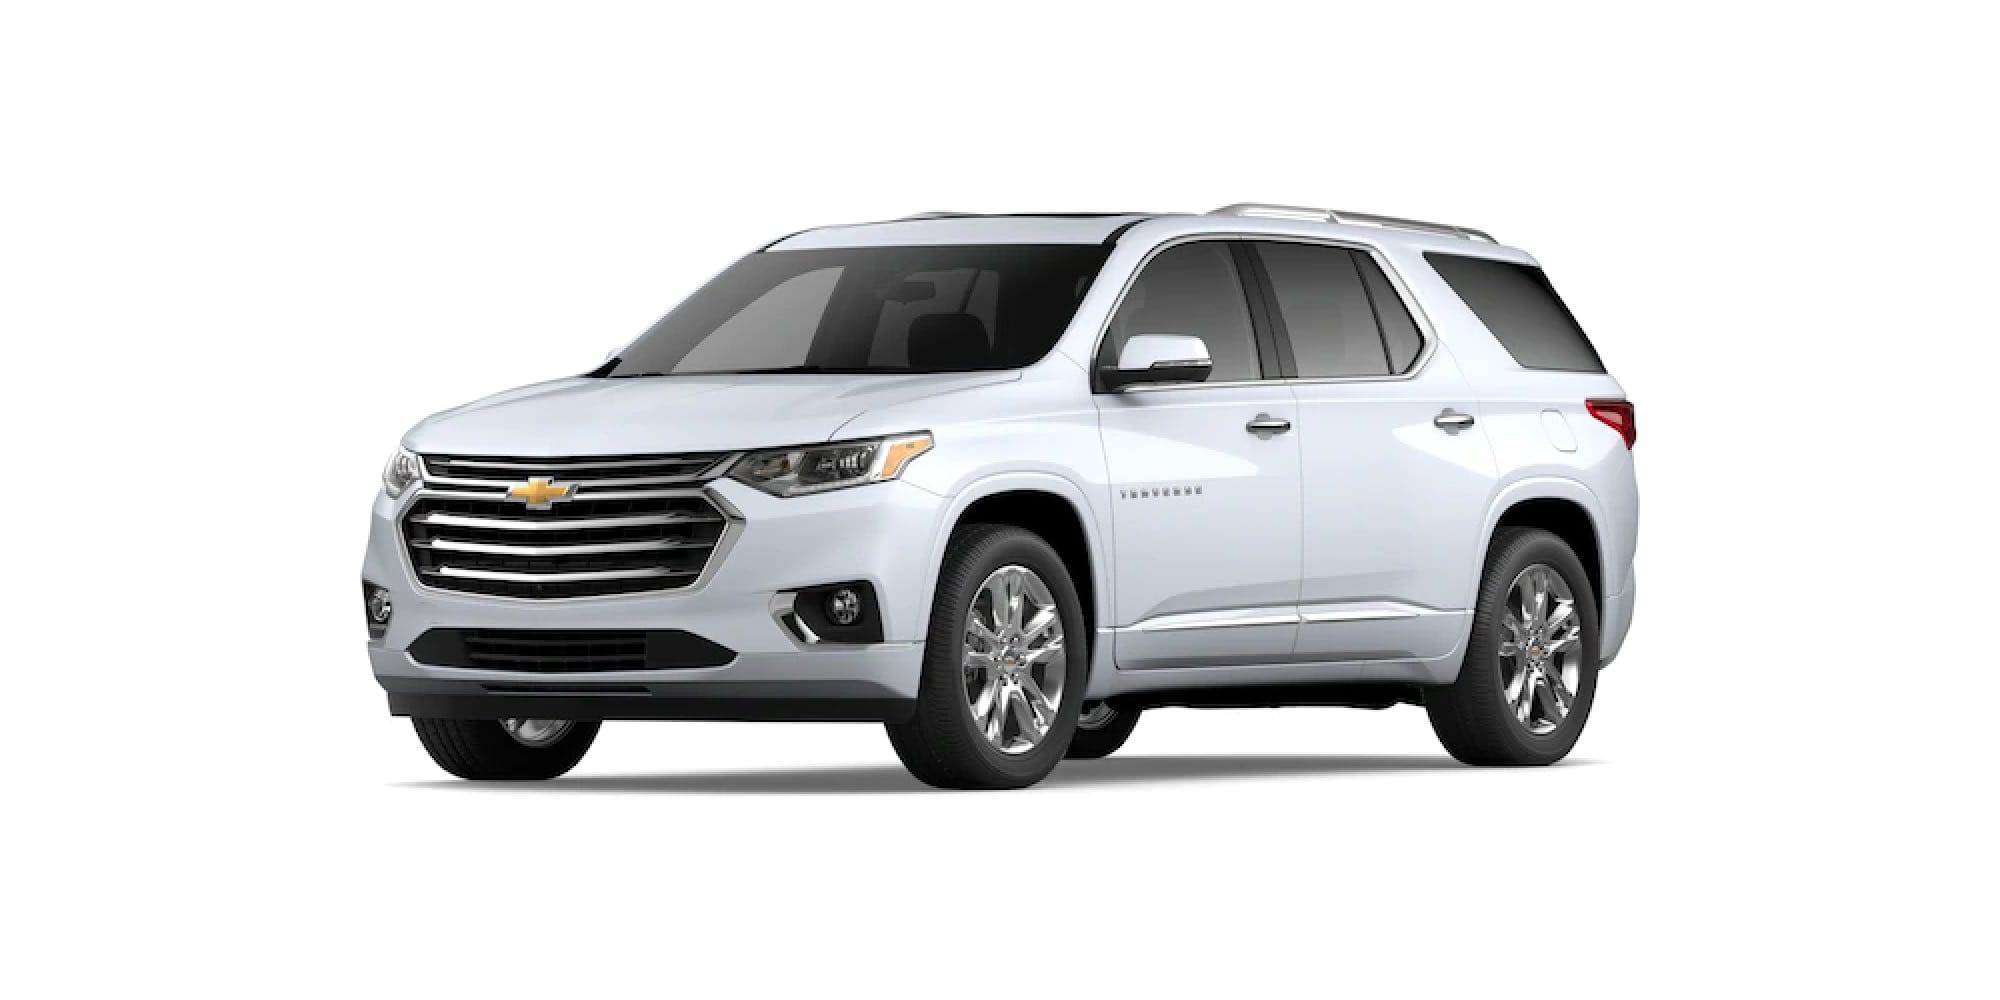 2021 Chevy Traverse in Summit White